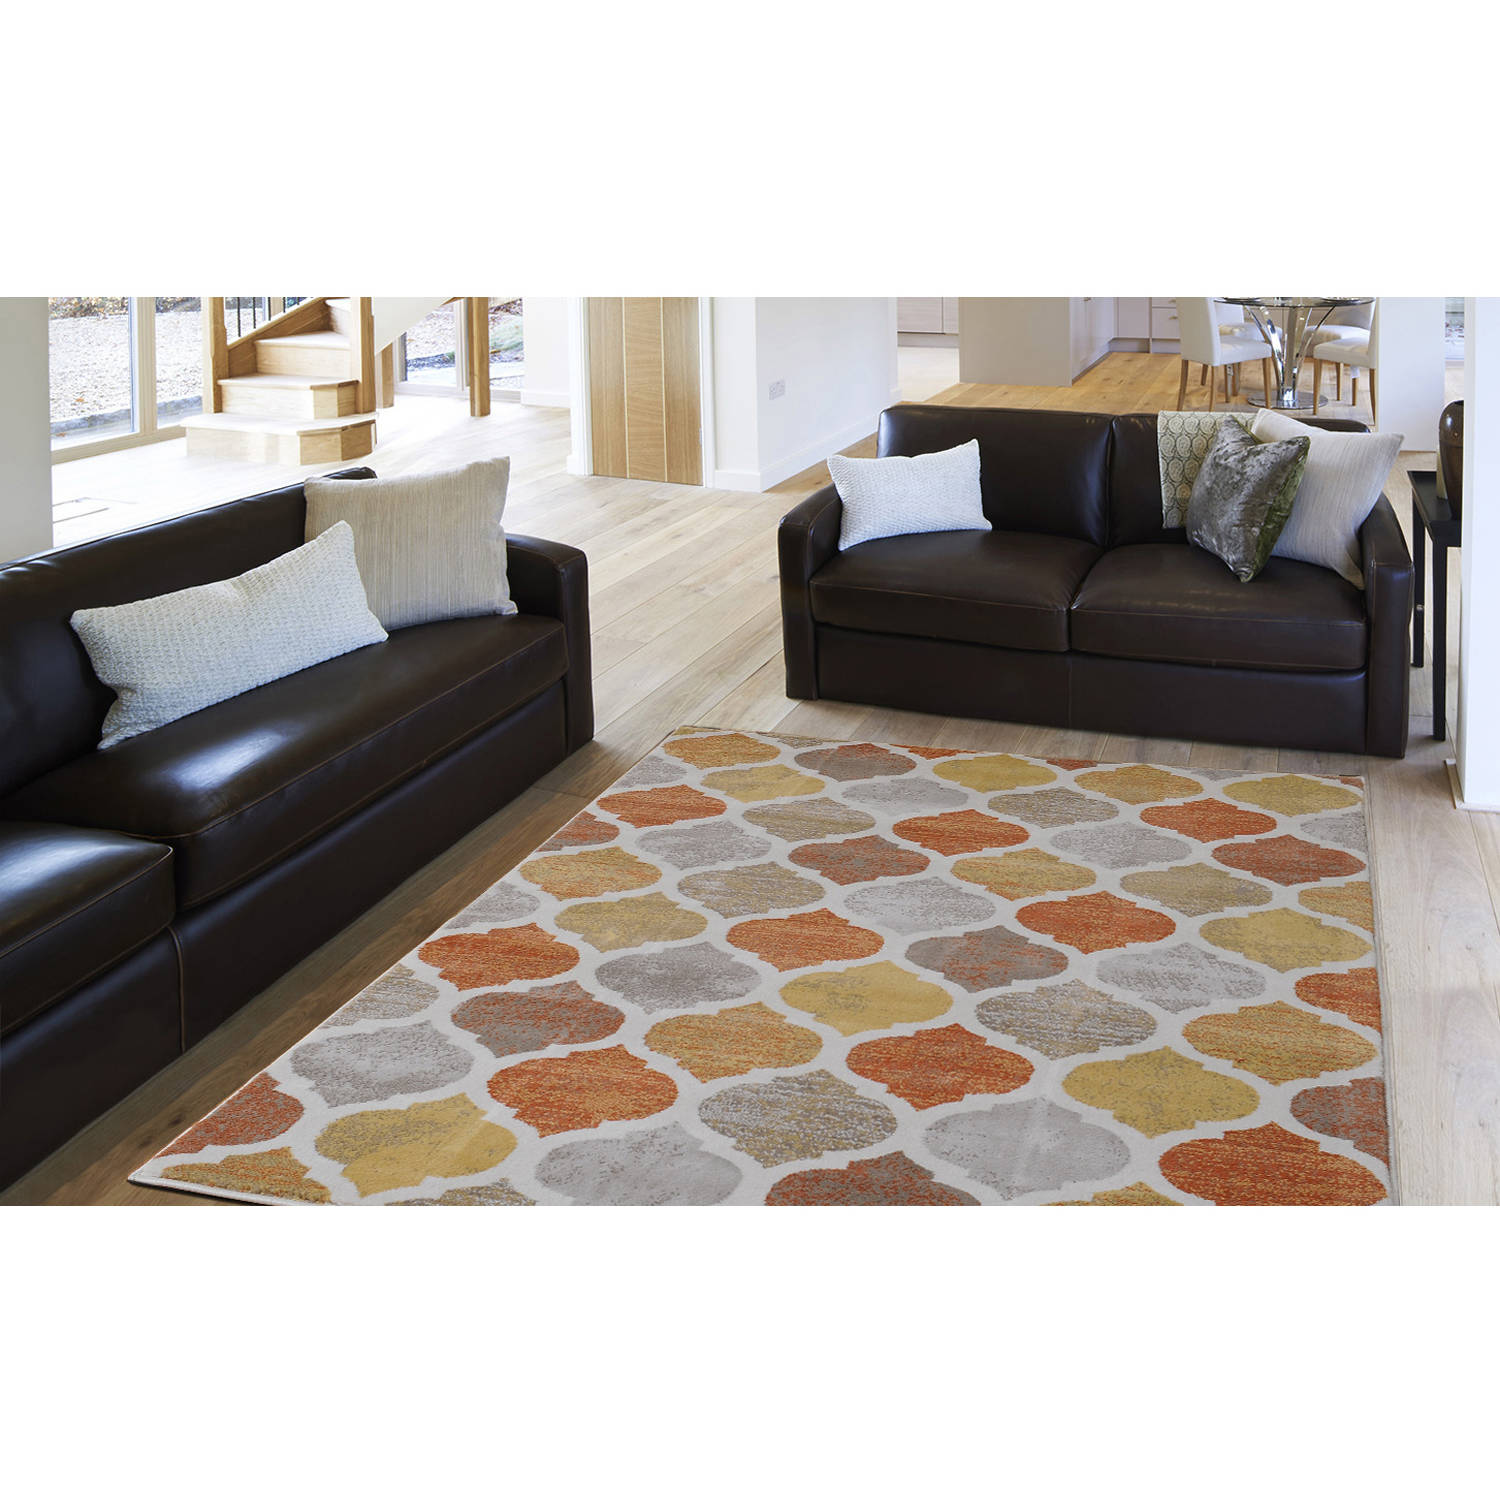 Home dynamix tremont collection hd5012 731 beige orange modern home dynamix tremont collection hd5012 731 beige orange modern moroccan area rug contemporary trellis style walmart dailygadgetfo Gallery